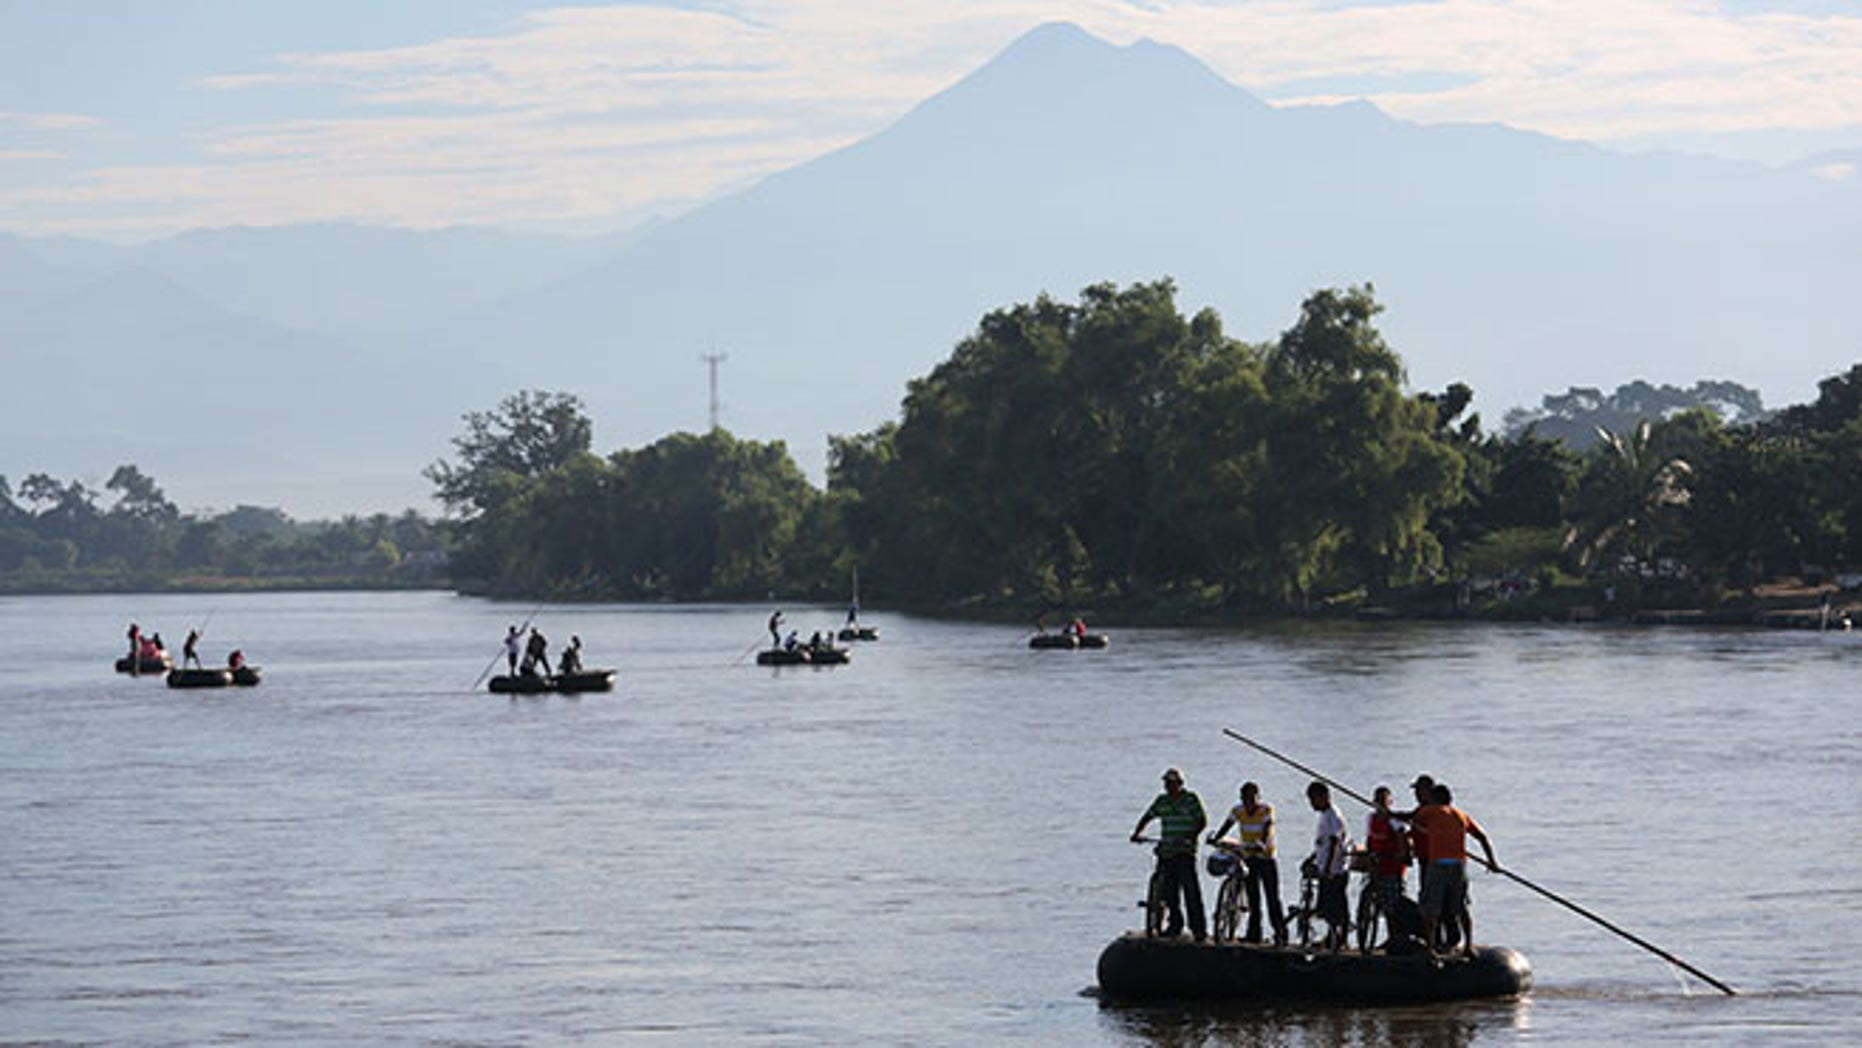 People cross the Suchiate River on rafts from Guatemala into Mexico on August 2, 2013 in Ciudad Hidalgo, Chiapas, Mexico.